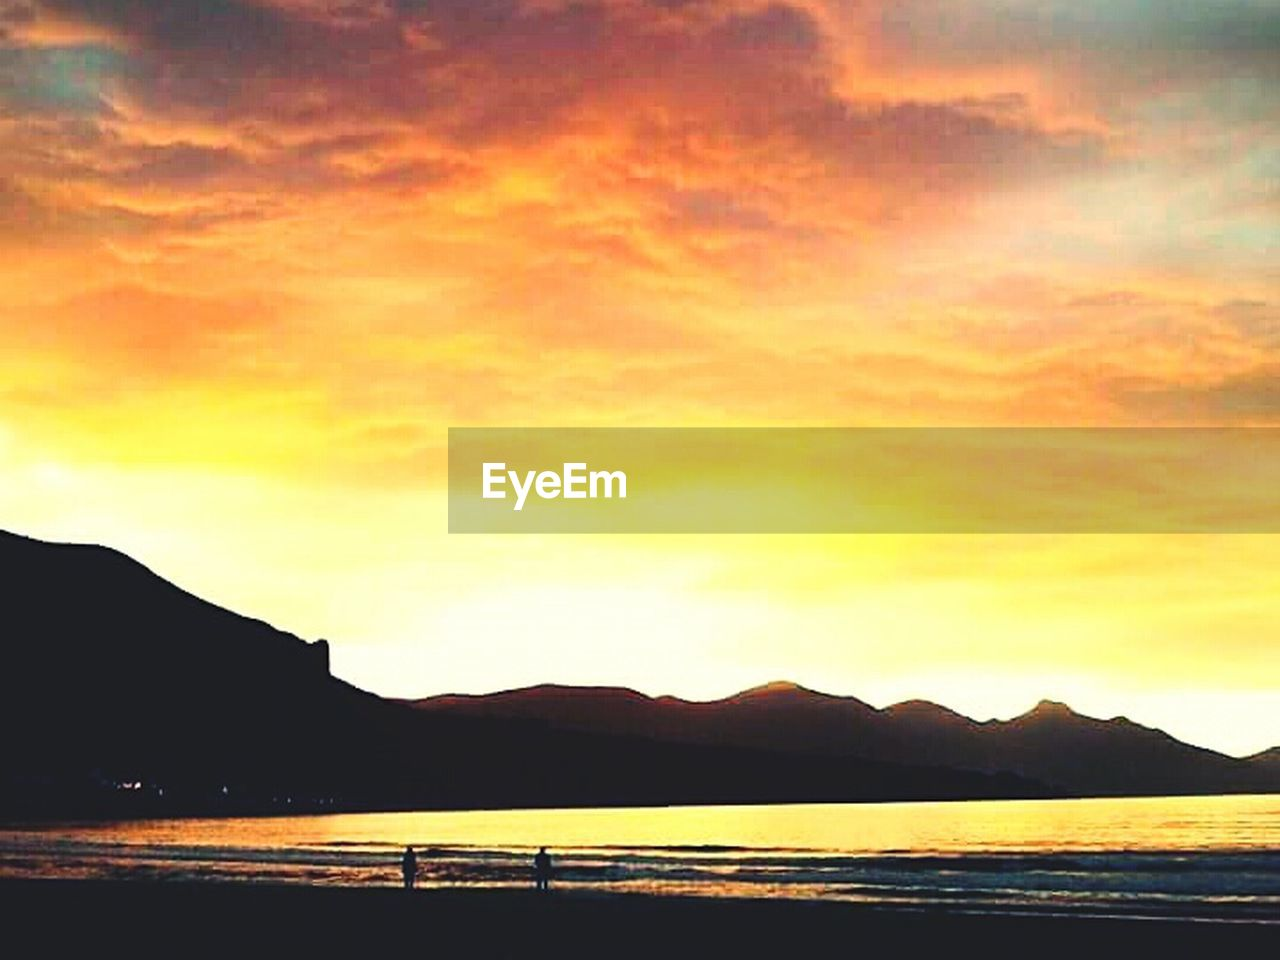 sunset, beauty in nature, scenics, mountain, silhouette, nature, tranquility, water, tranquil scene, dramatic sky, outdoors, sea, no people, travel destinations, mountain range, beach, sky, day